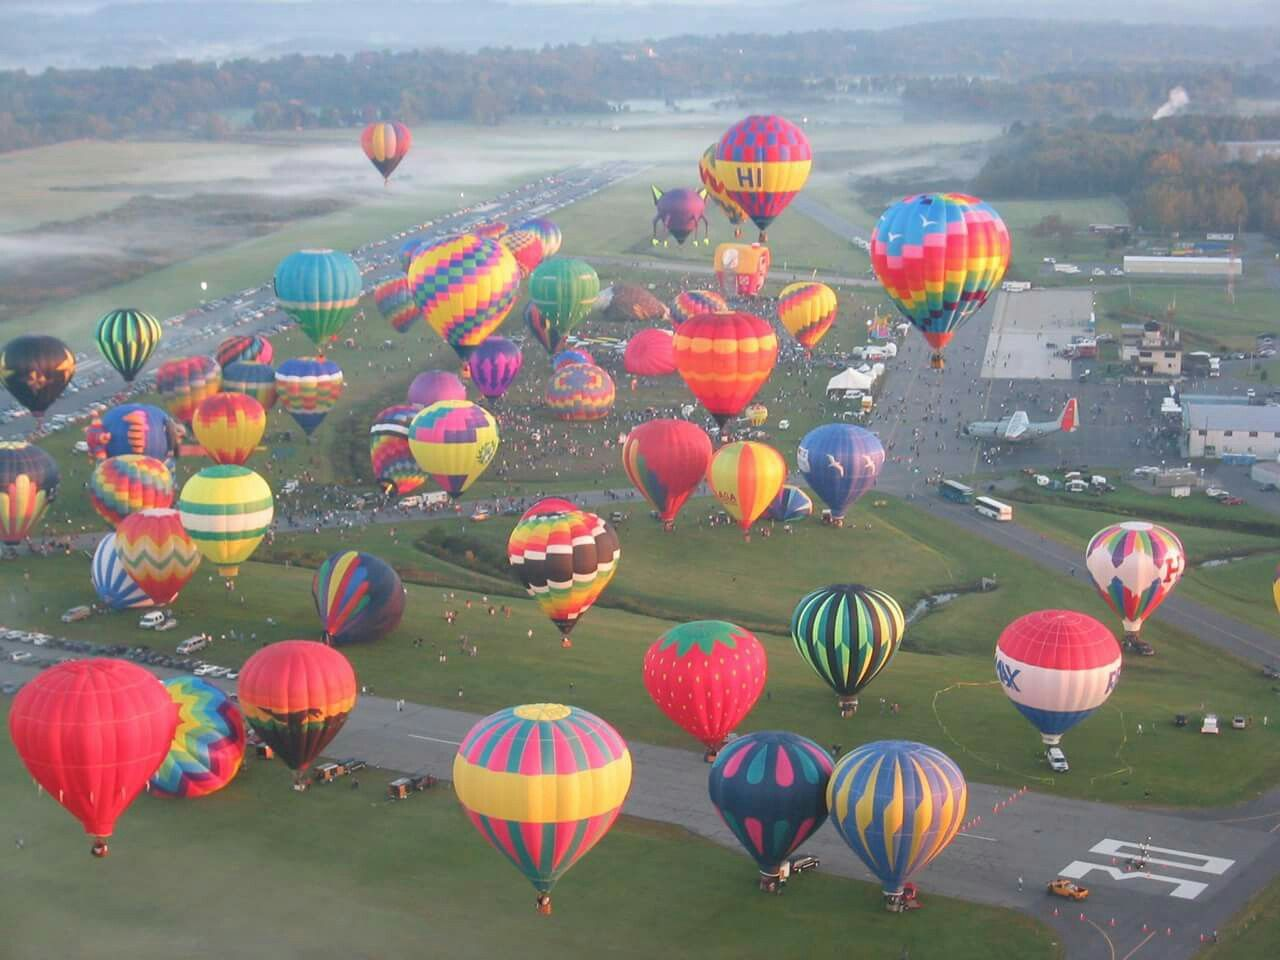 Pin by Sumac on Autumn Hot air balloon rides, Hot air